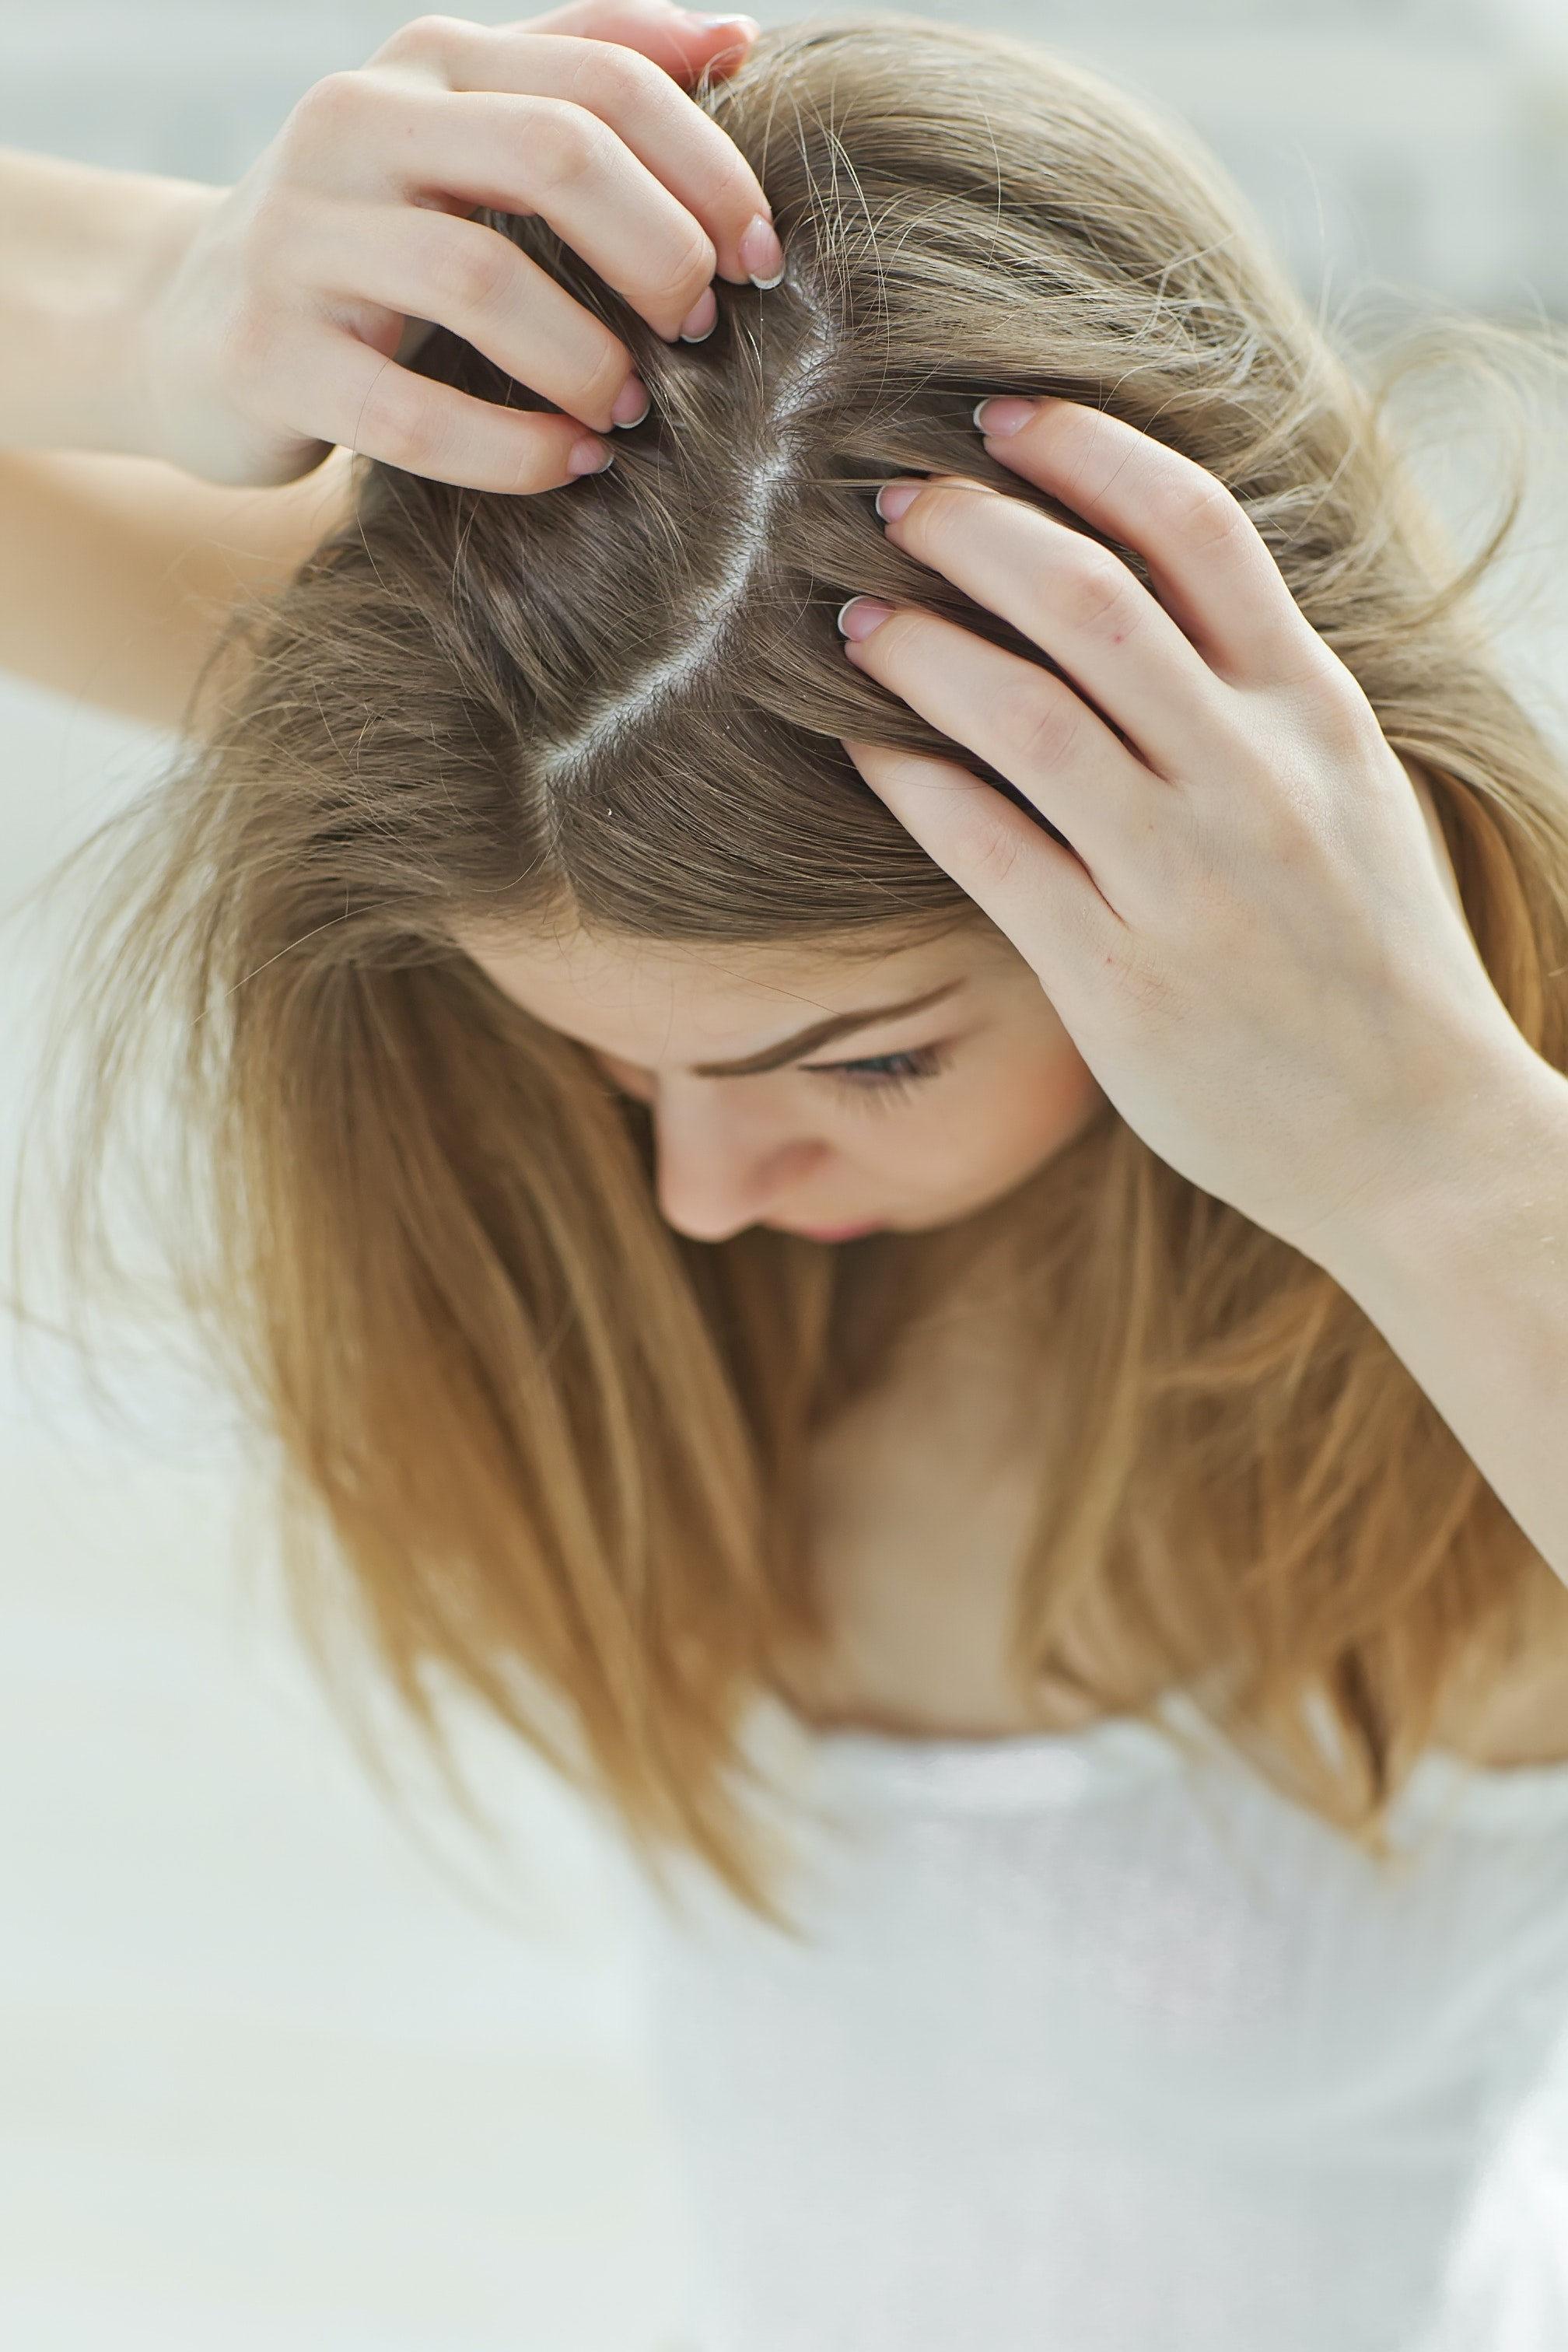 An image depicting a person suffering from soft scalp lump symptoms